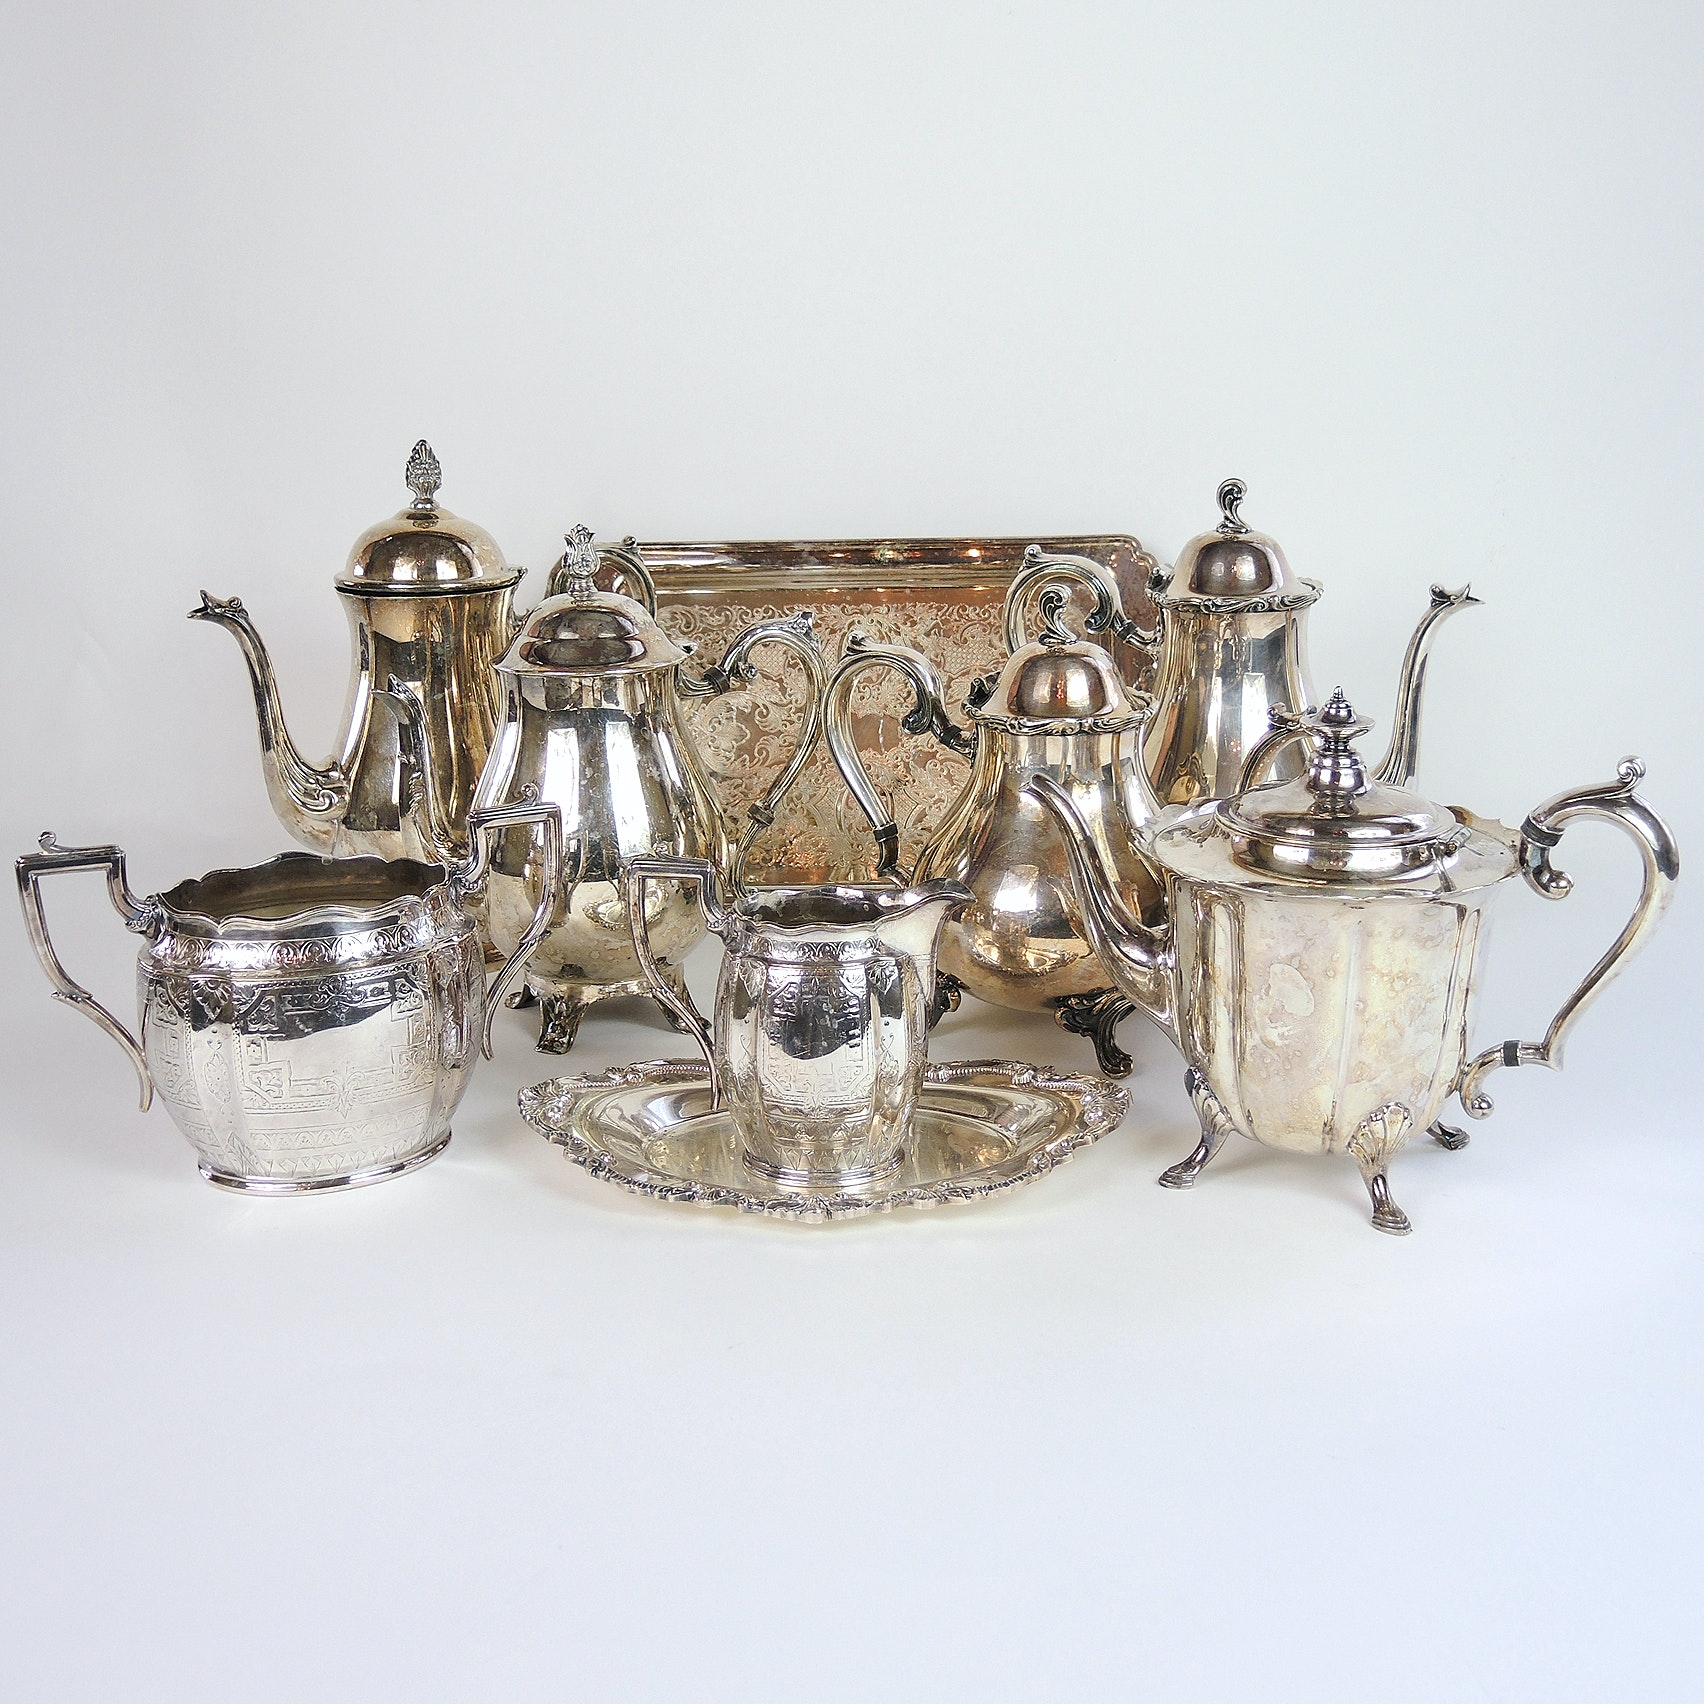 James Dixon & Sons Sugar and Creamer With Silver Plate Coffeepots and Teapots